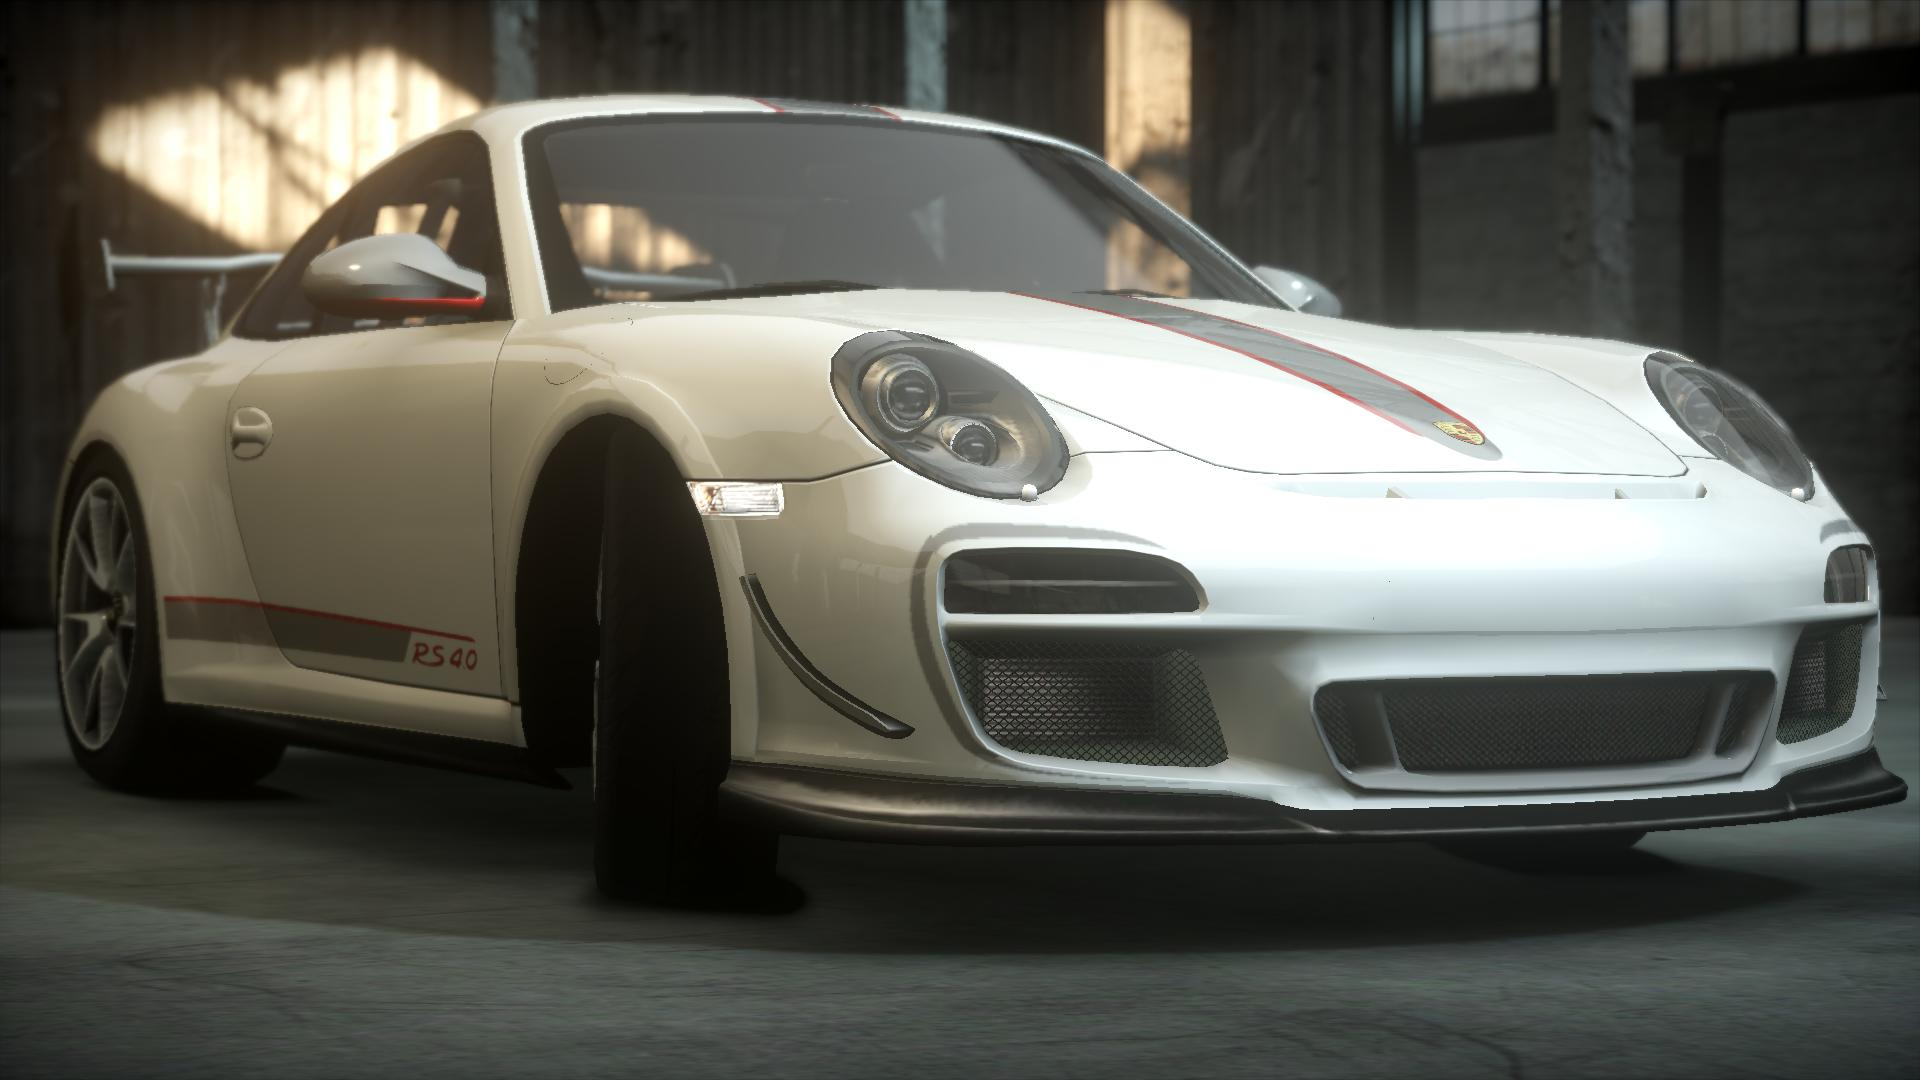 porsche 911 gt3 rs 4 0 997 need for speed wiki fandom powered by wikia. Black Bedroom Furniture Sets. Home Design Ideas